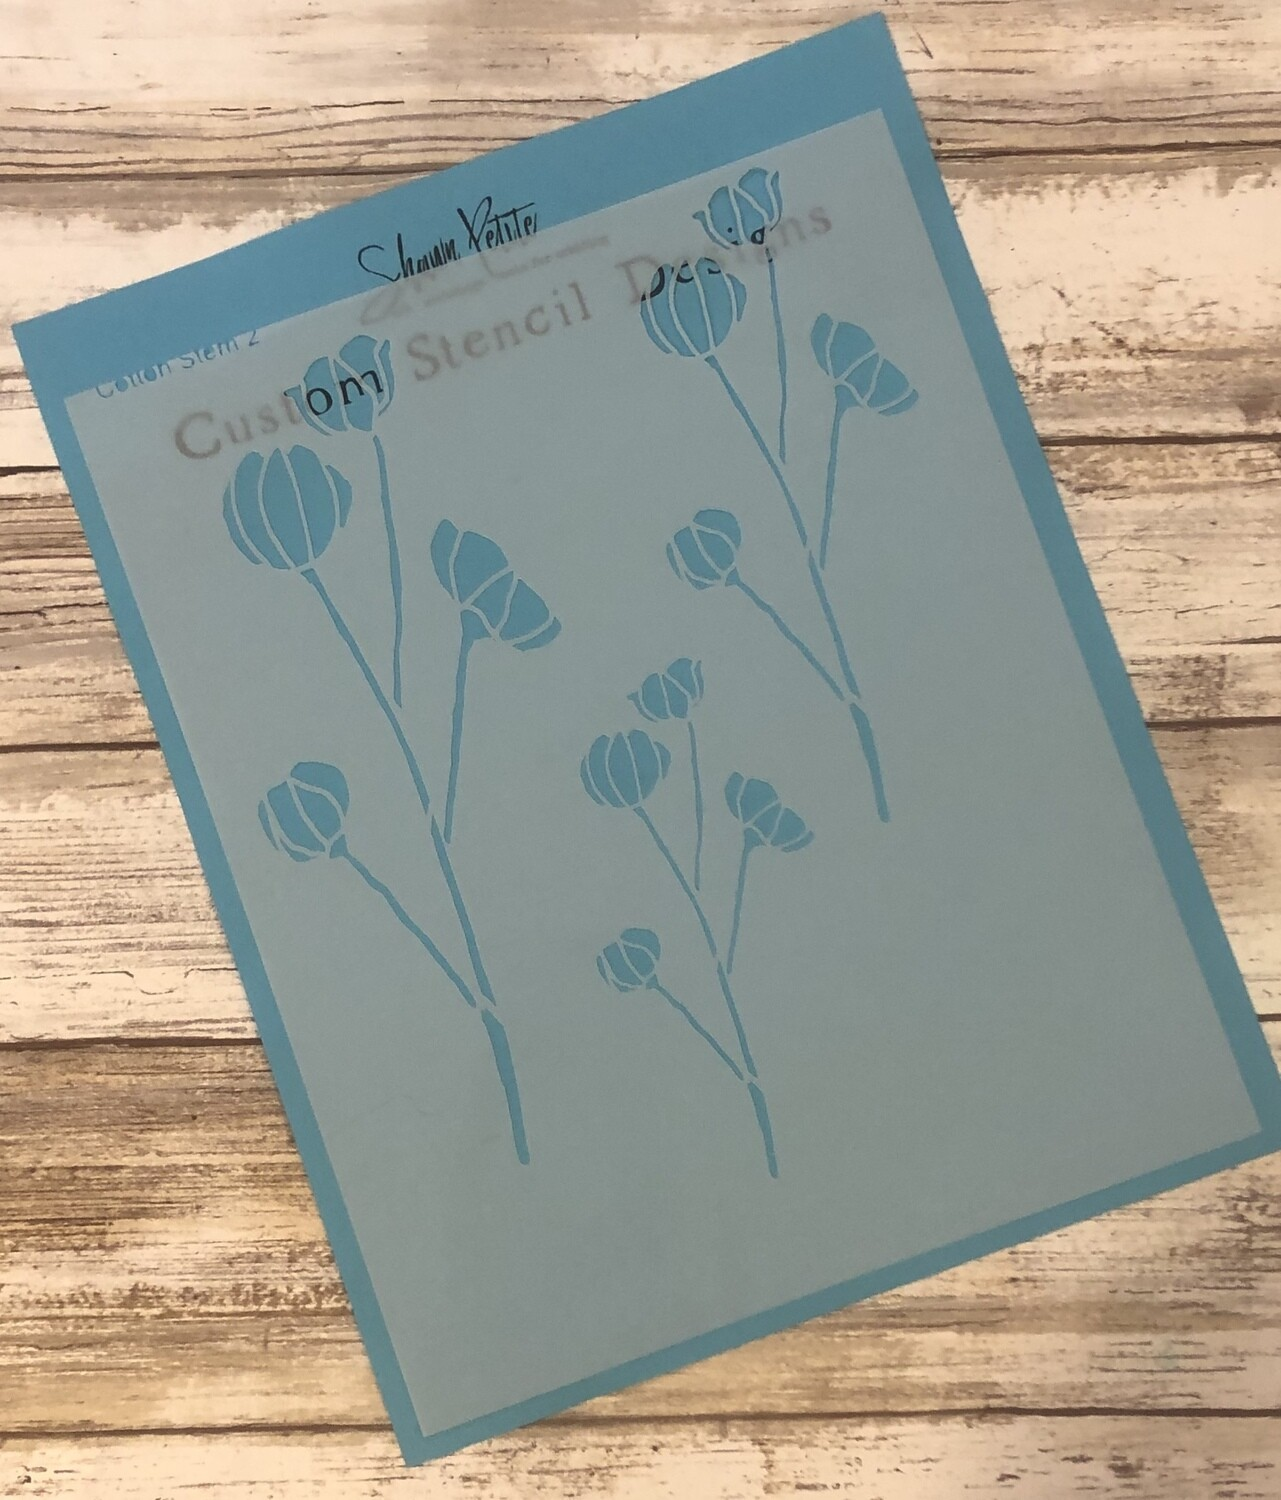 Cotton Stems 2 clearance stencil